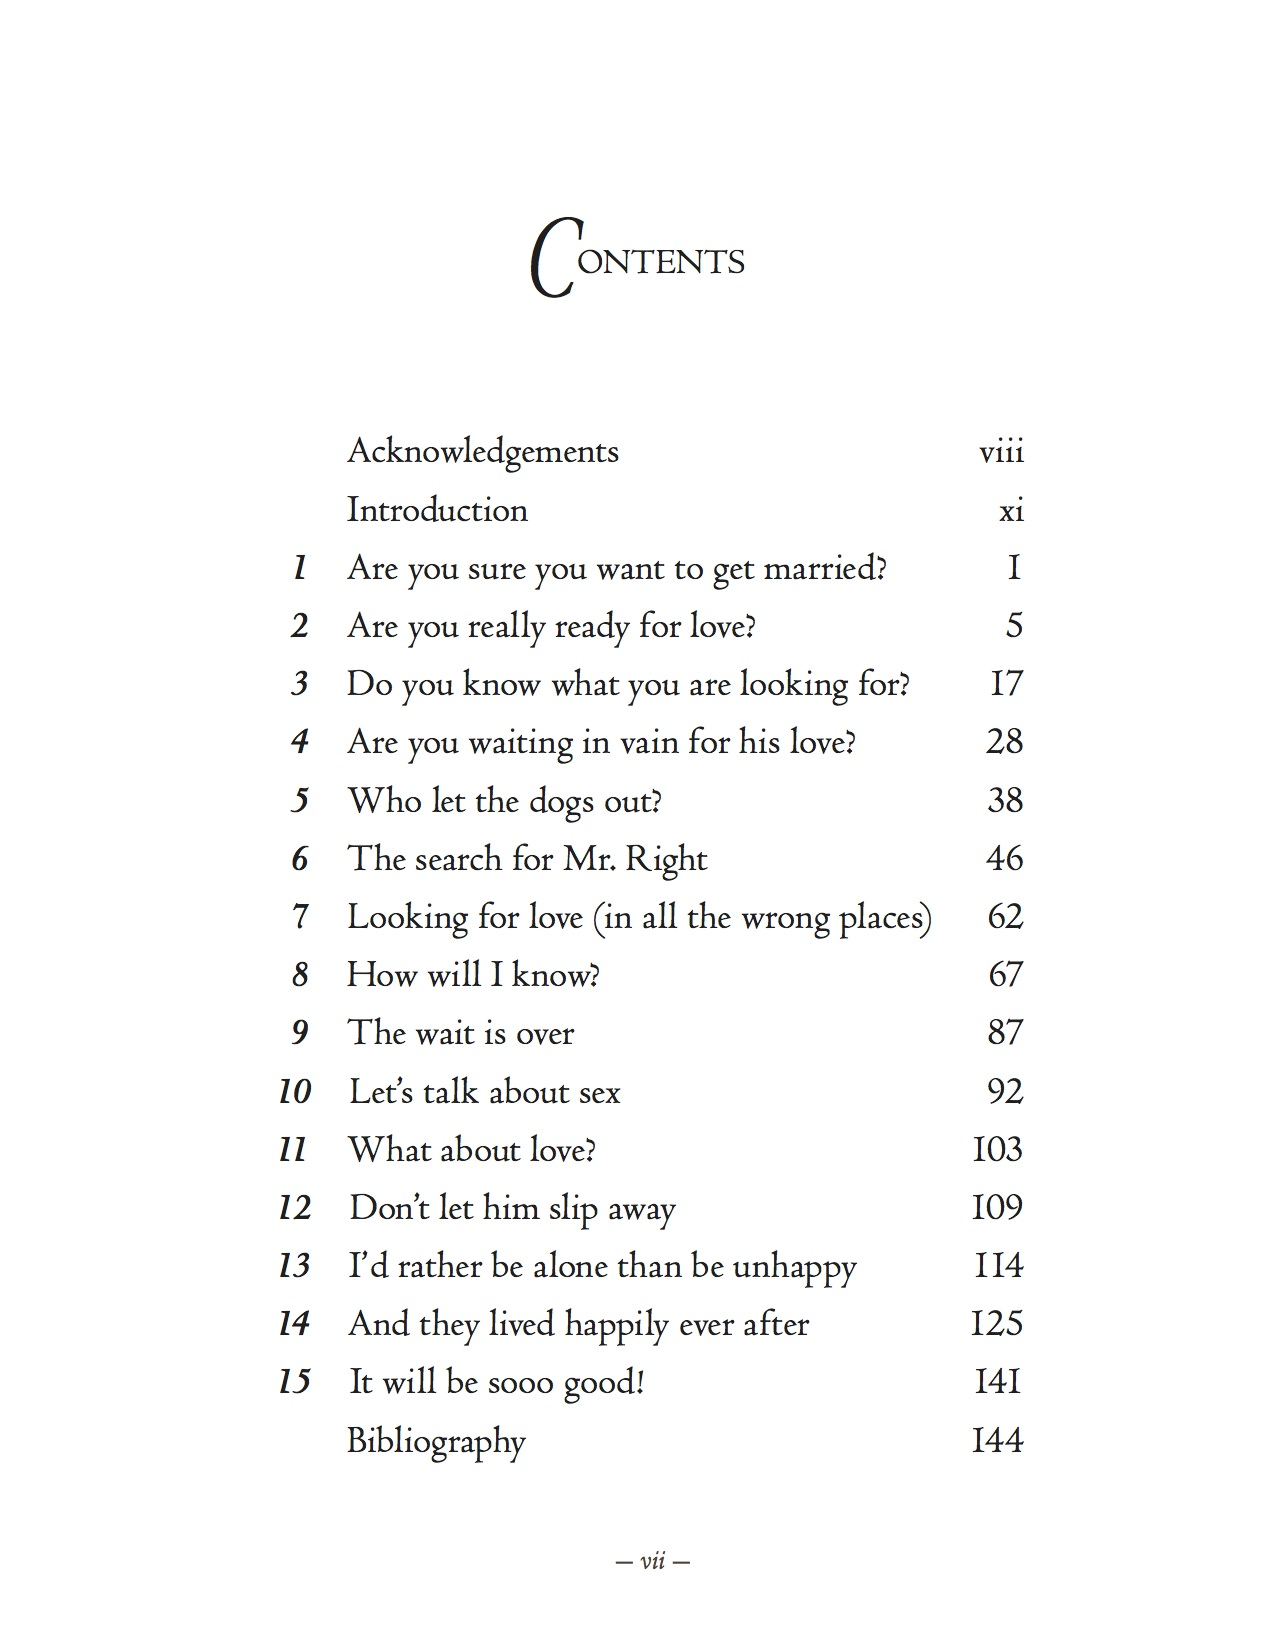 Contents page New.jpg